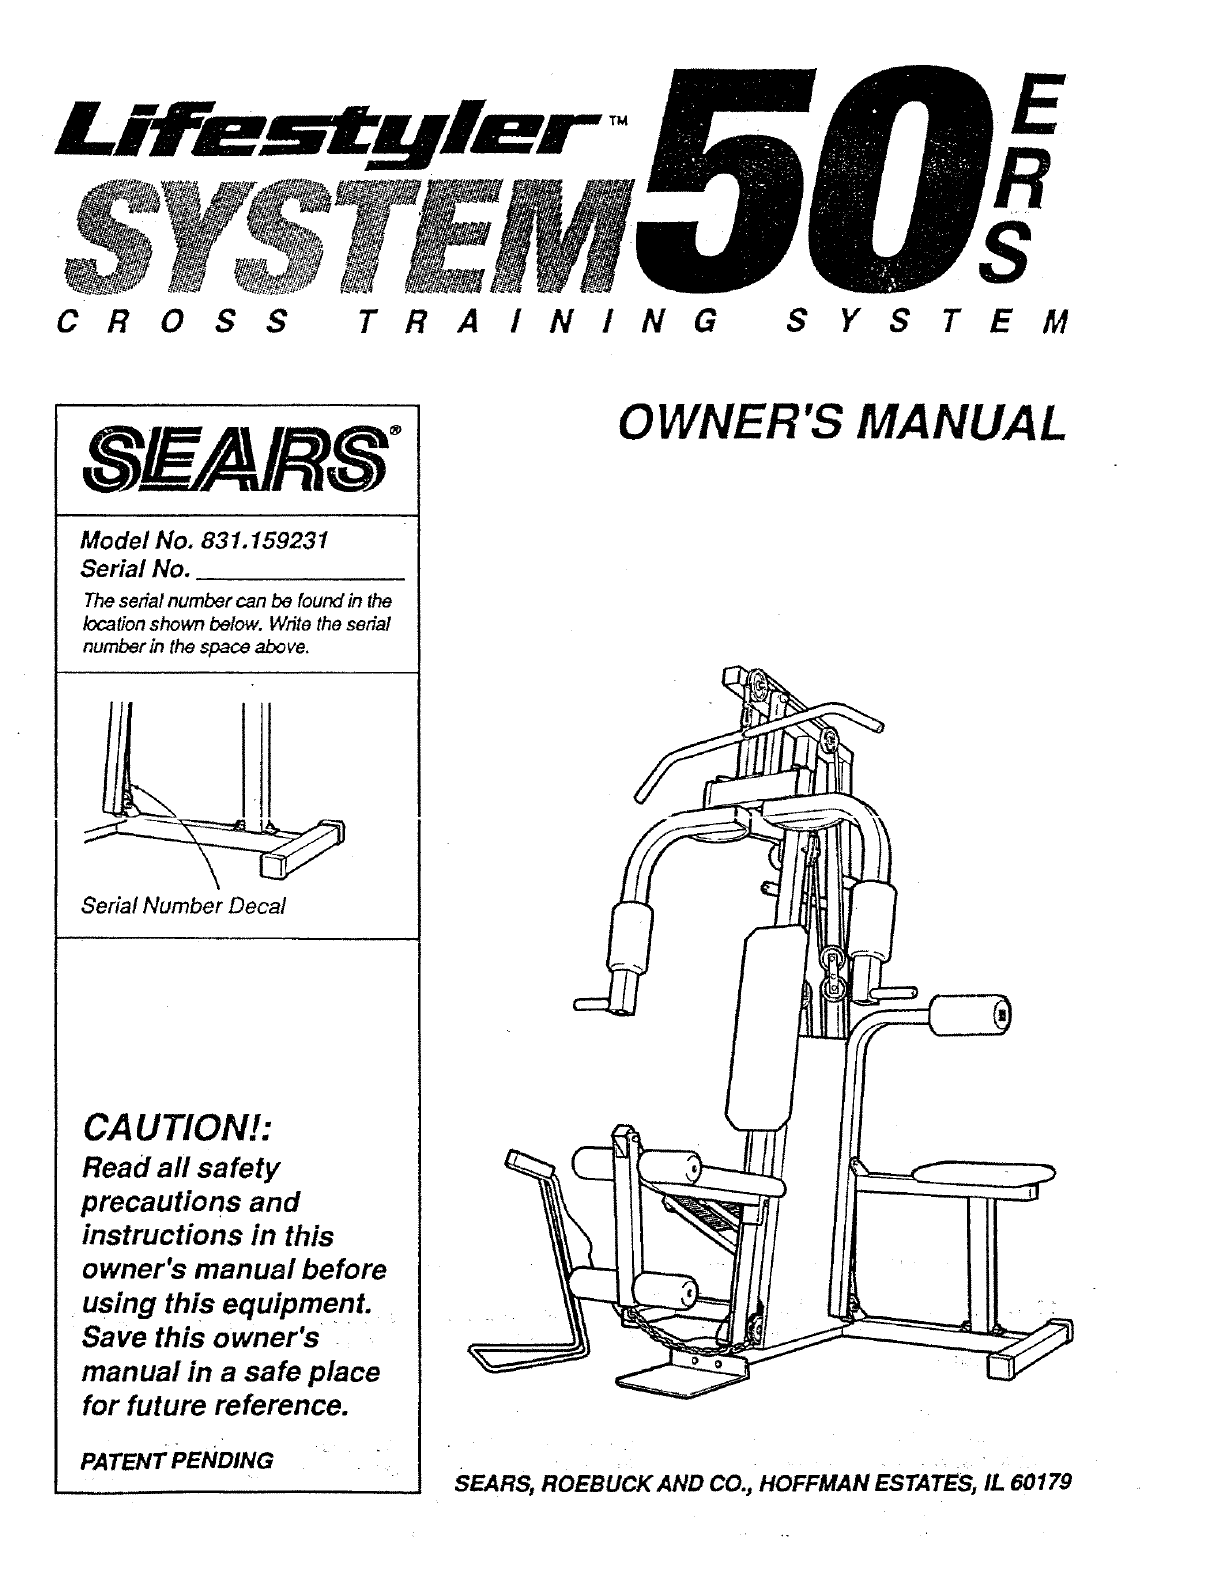 Sears Fitness Equipment 831.159231 User Guide